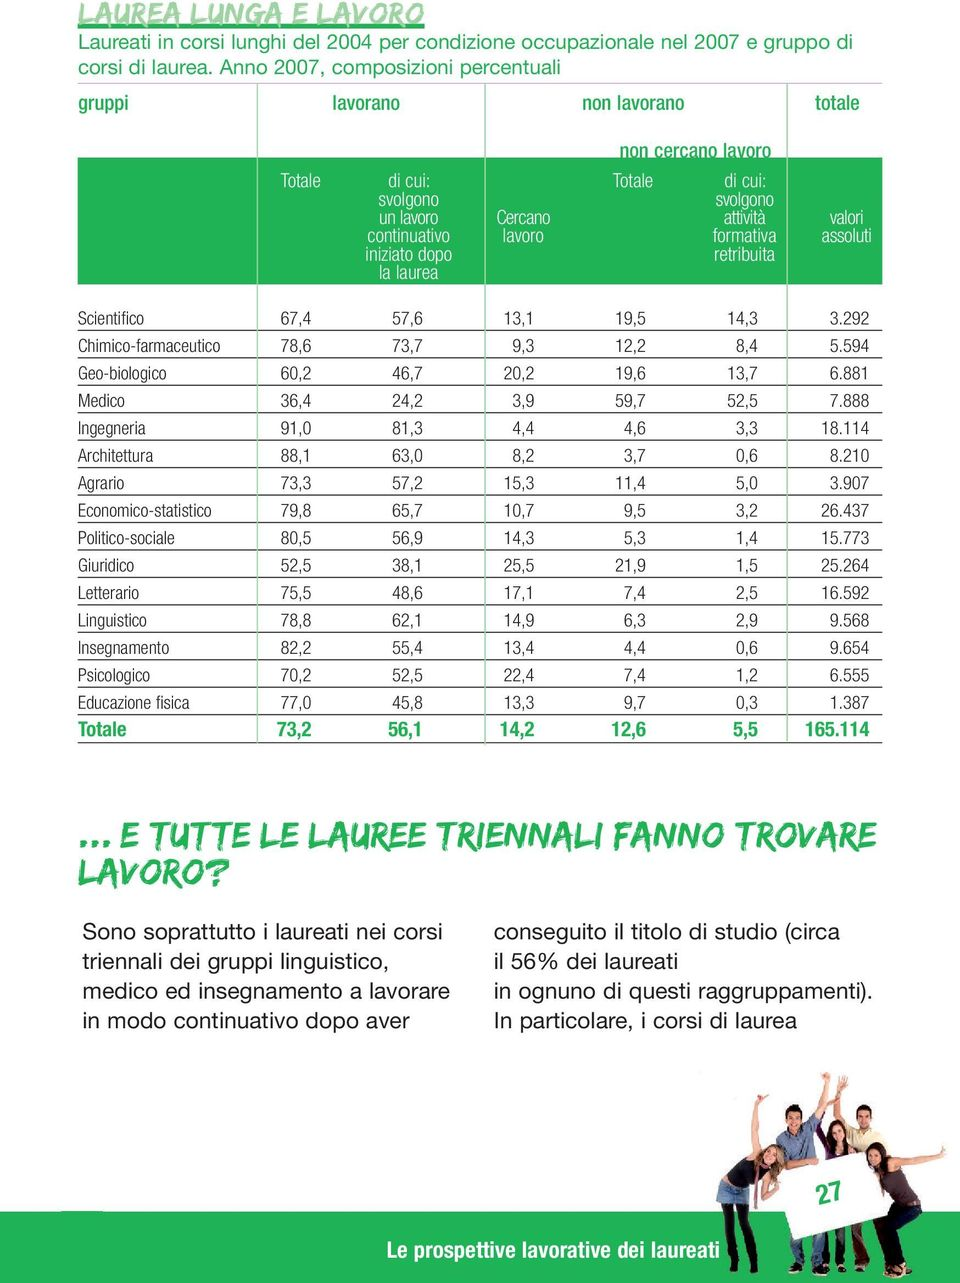 formativa assoluti iniziato dopo retribuita la laurea Scientifico 67,4 57,6 13,1 19,5 14,3 3.292 Chimico-farmaceutico 78,6 73,7 9,3 12,2 8,4 5.594 Geo-biologico 60,2 46,7 20,2 19,6 13,7 6.